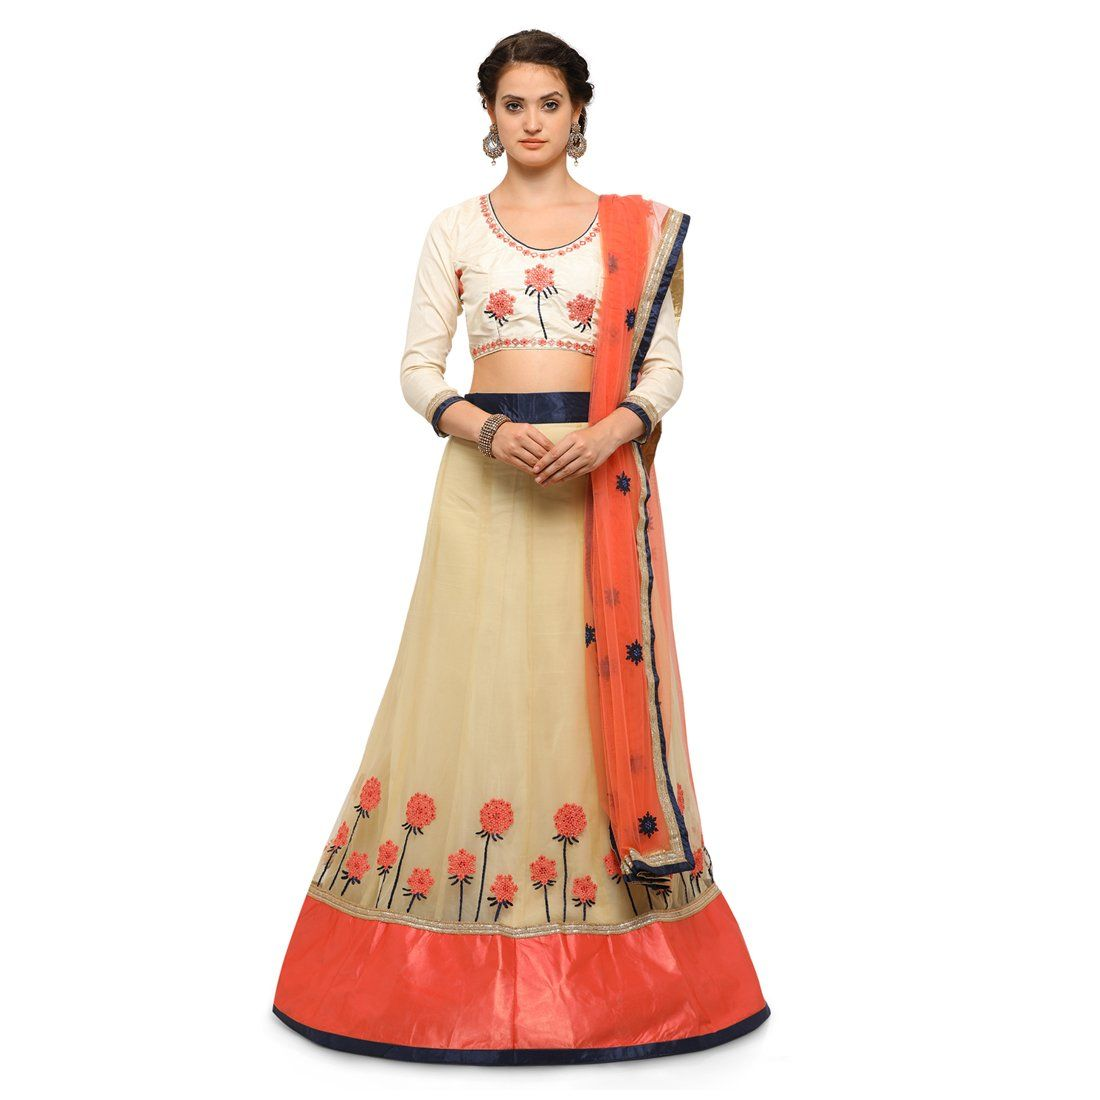 Manvaa net women   embroidered lehenga in beige color amazon clothing accessories also red bangalori silk choli beautiful dress buy now rh pinterest